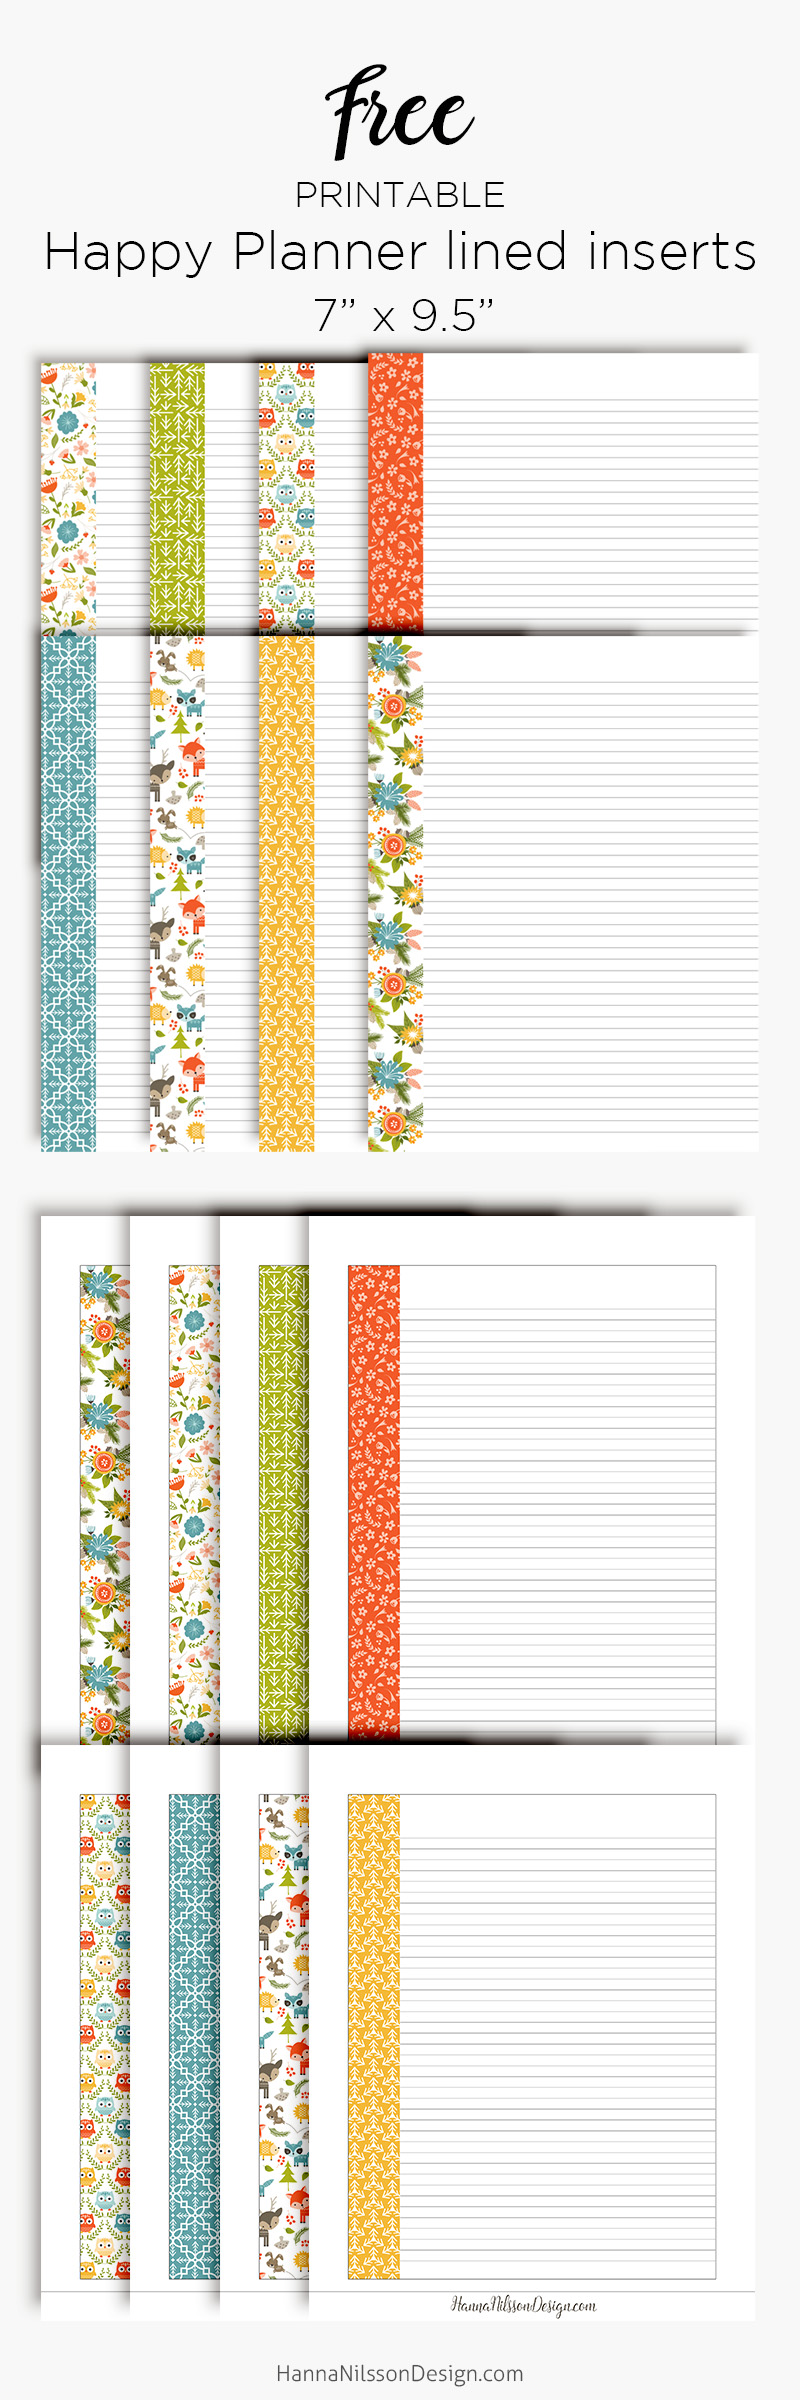 picture about Free Planner Inserts identify Protected planner inserts Content Planner + A5 Individual dimensions